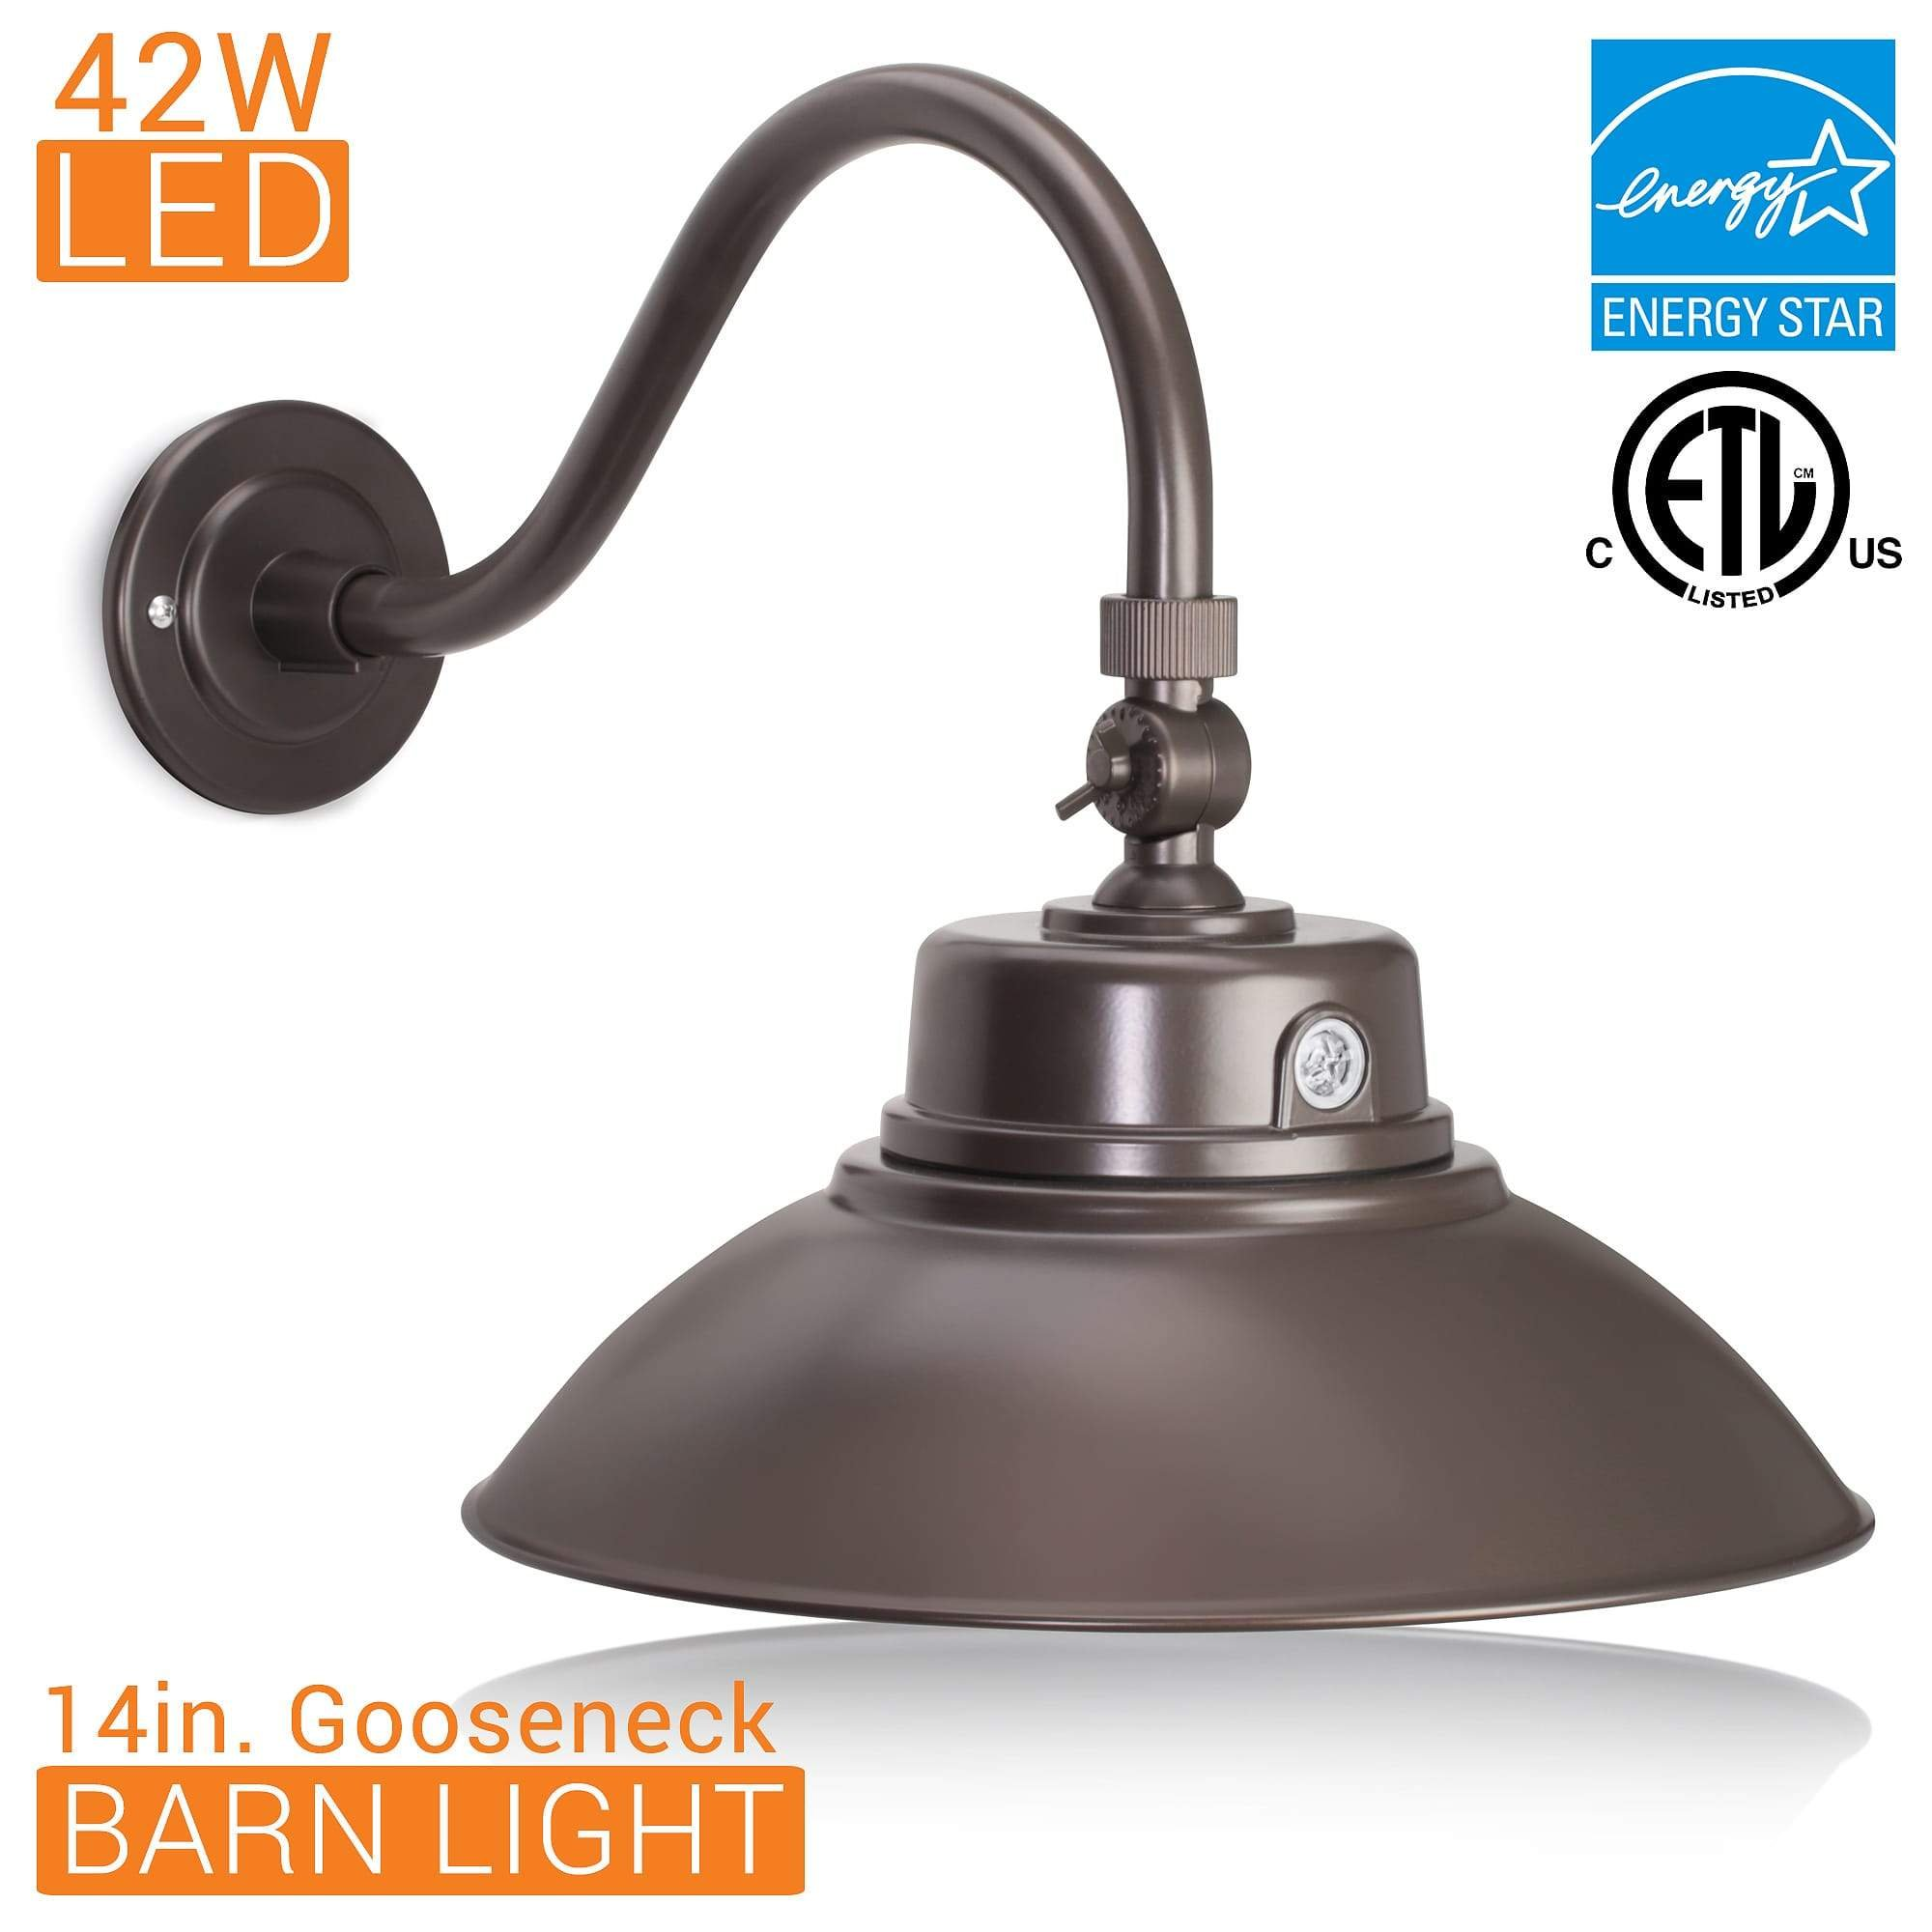 14in. Bronze Gooseneck Barn Light LED Fixture for Indoor/Outdoor Use - Photocell Included - Swivel Head - 42W - 3800lm - Energy Star Rated - ETL Listed - Sign Lighting - 3000K (Warm White) by HTM Lighting Solutions